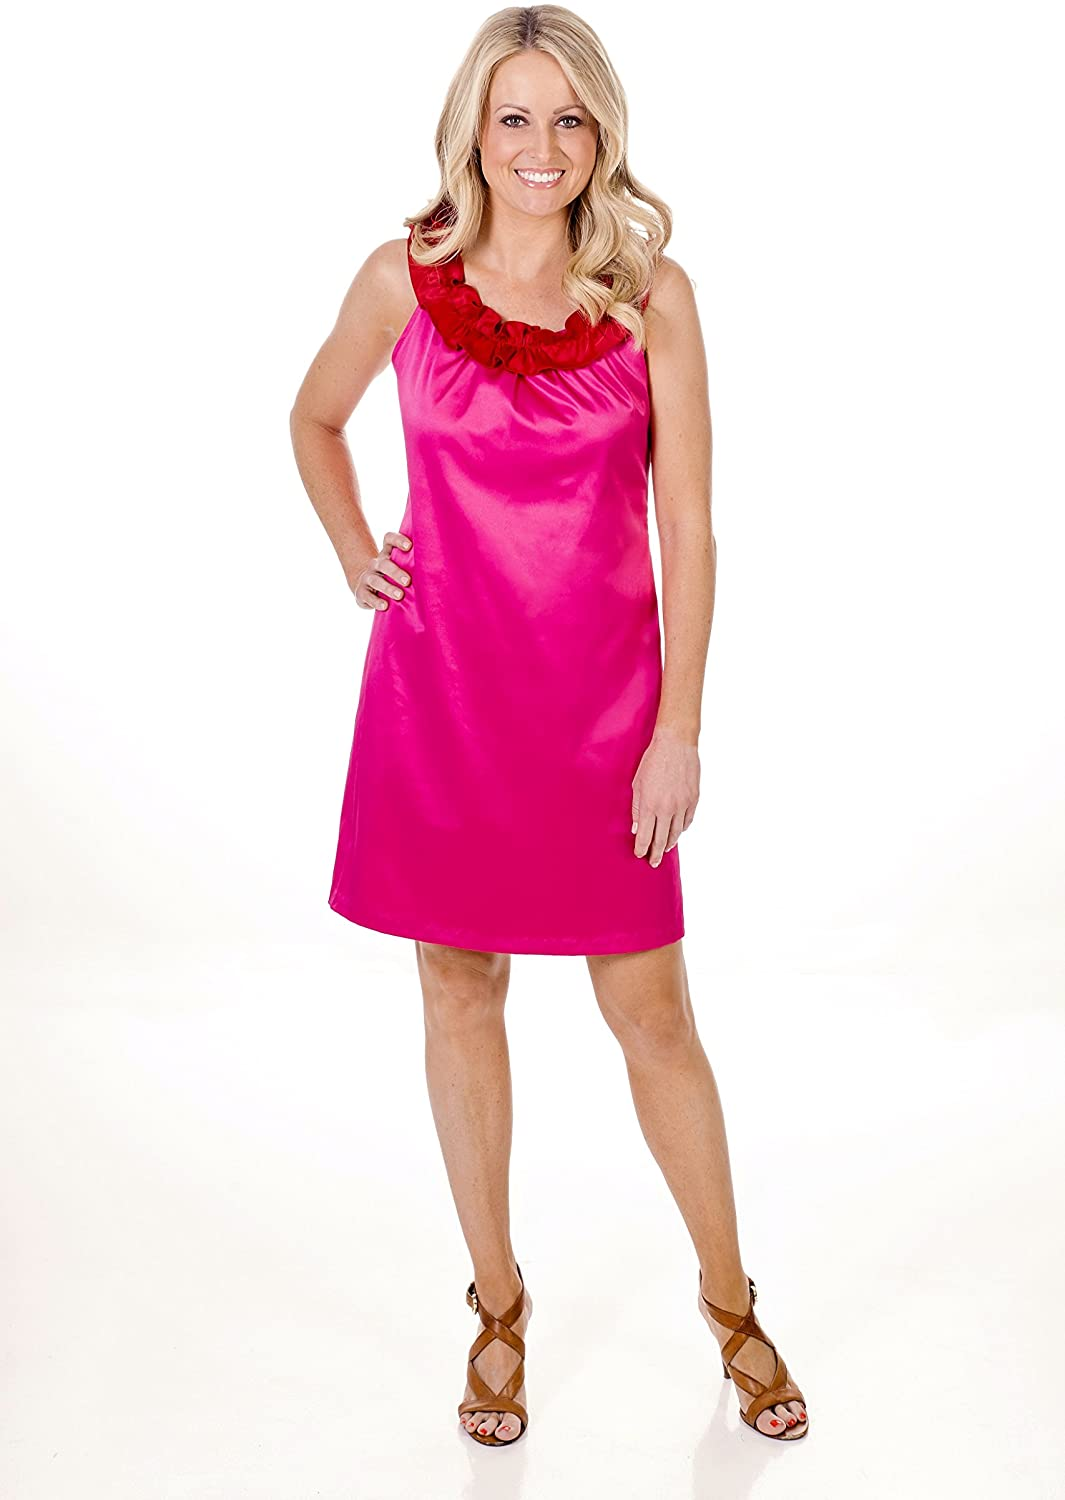 Hot Pink Sateen A-Line Dress With Red Sateen Ruffle Collar-Addabelle